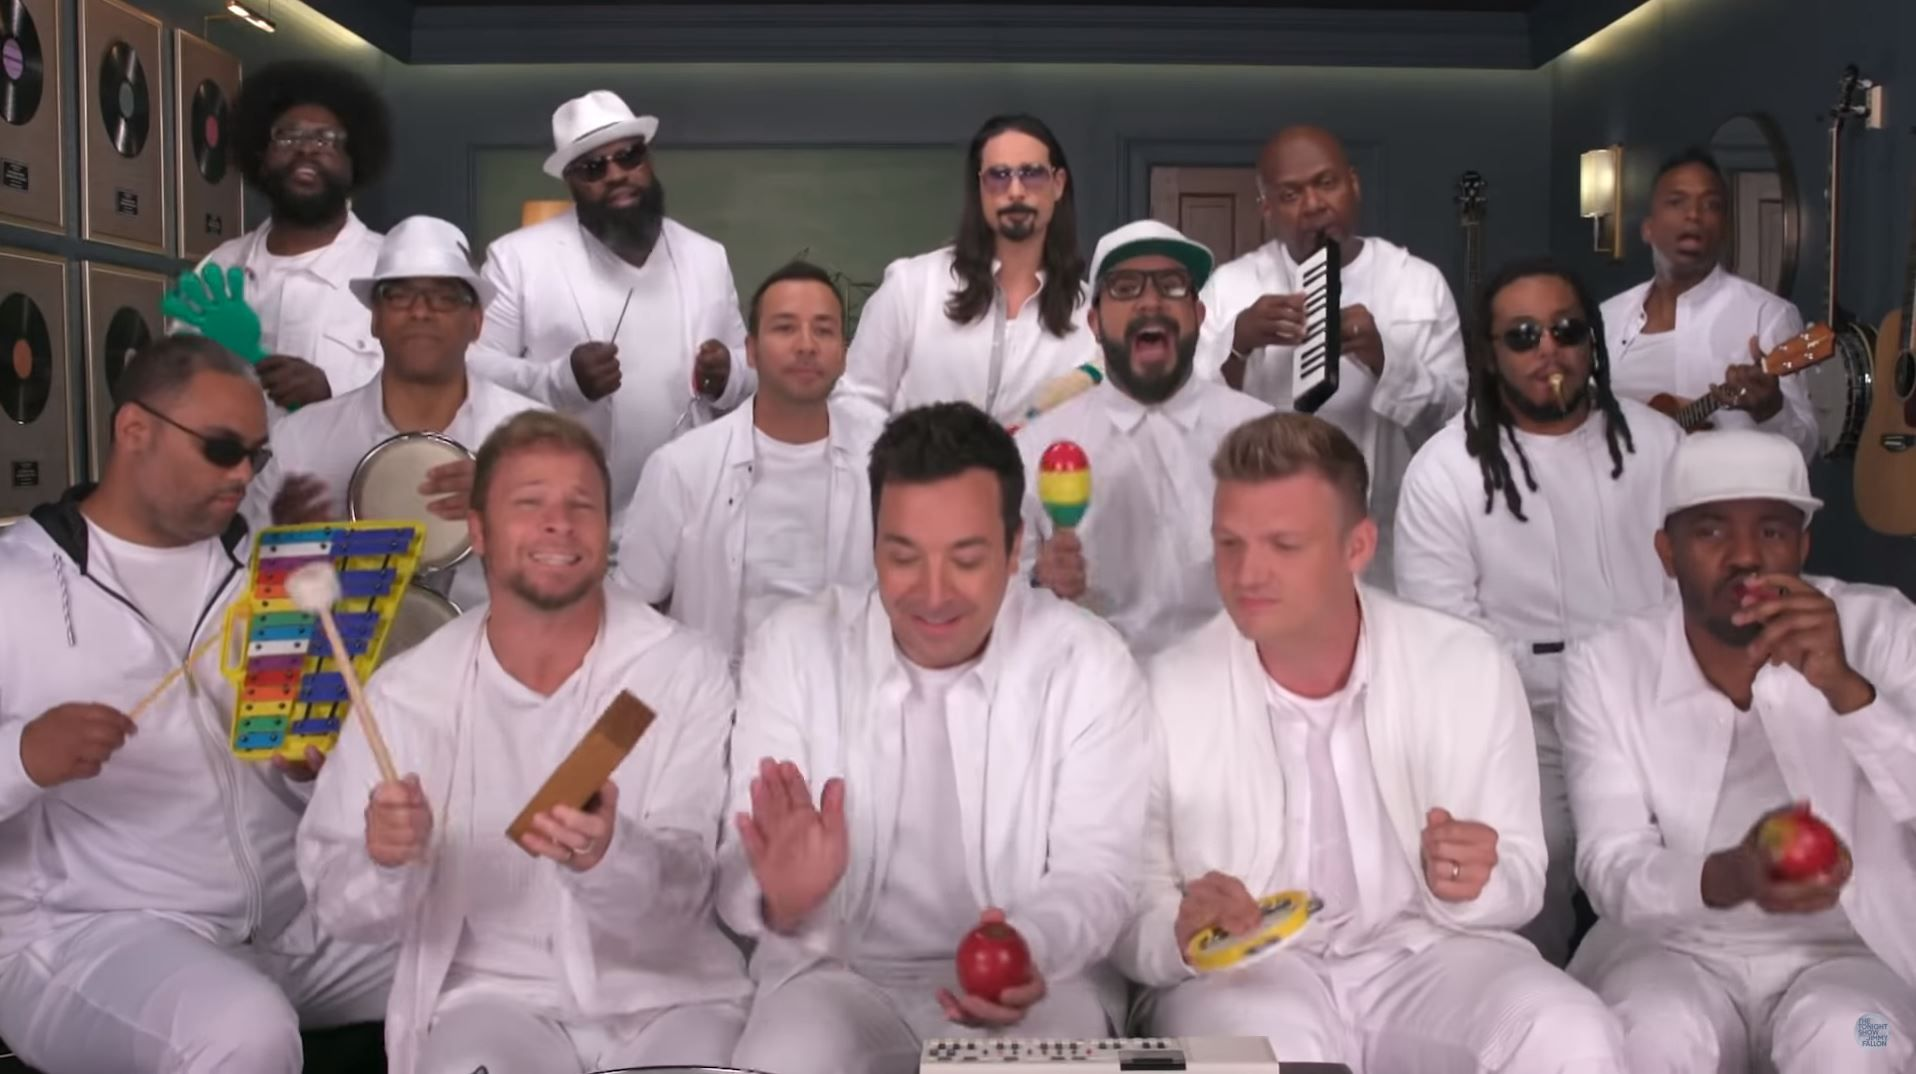 Jimmy Fallon BSB